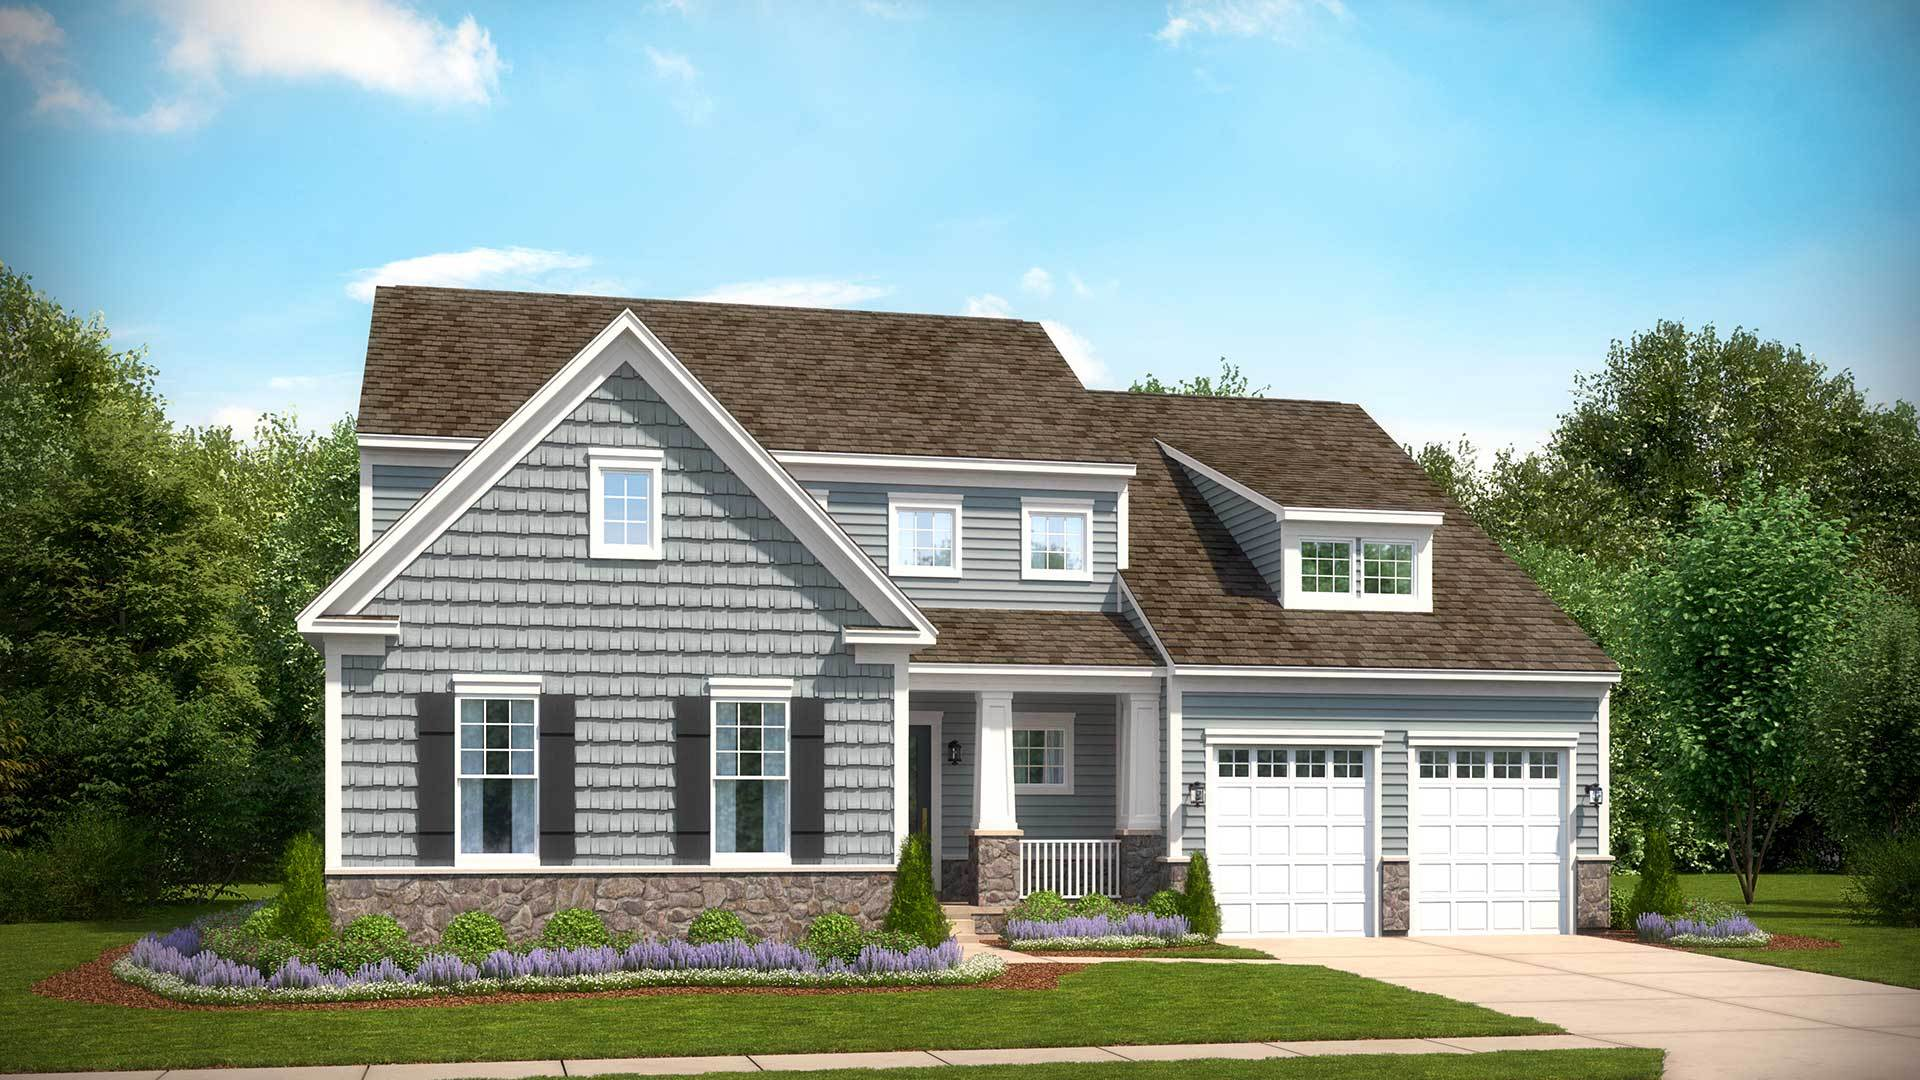 Russell-Design-at-Potomac Reserve-in-Manassas